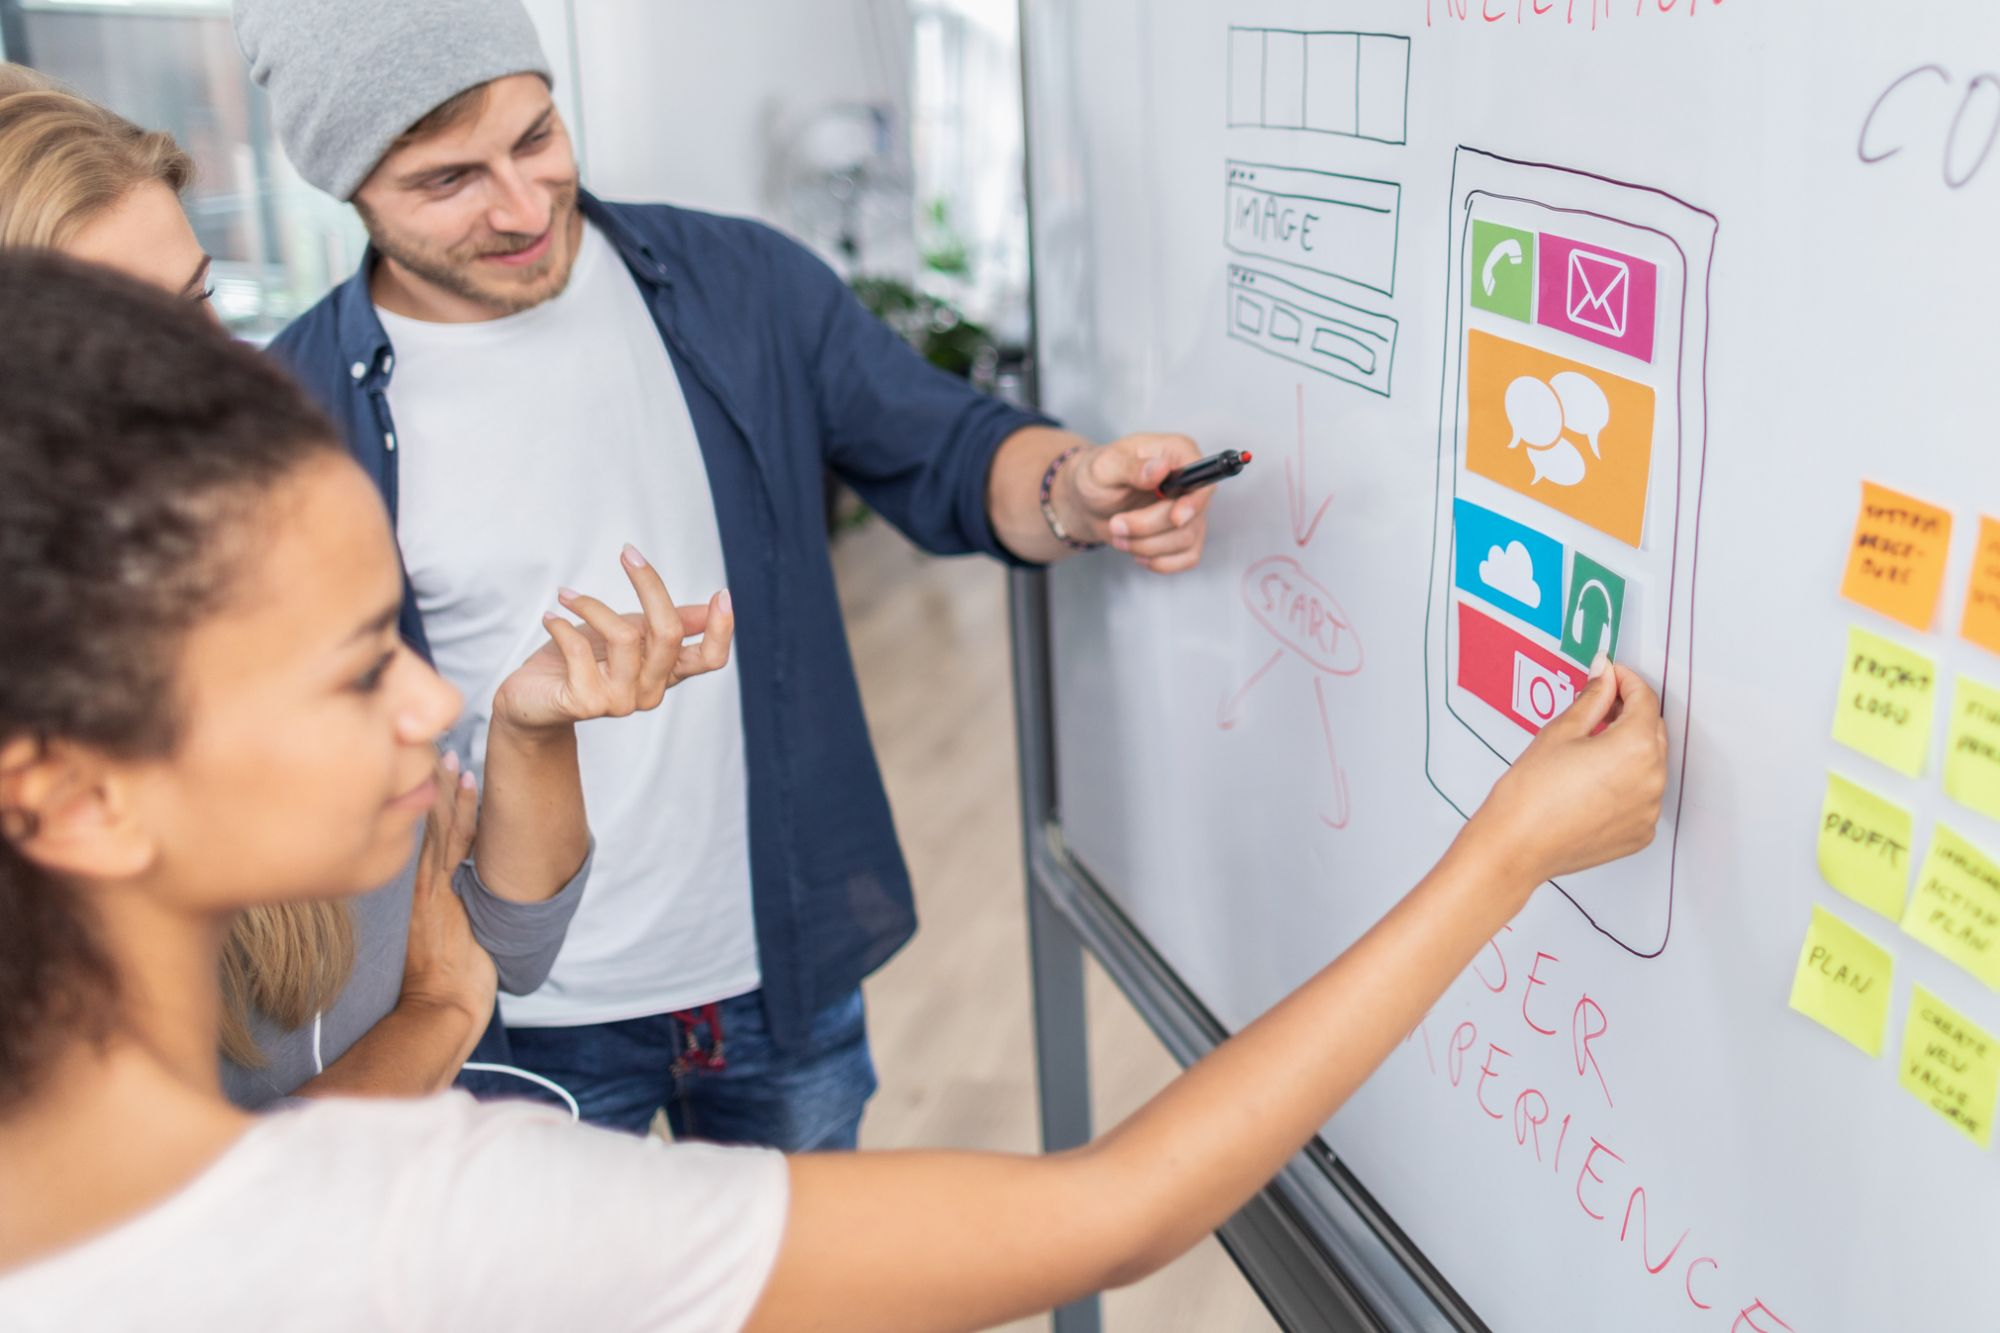 5 Quick-Fire Paid Marketing Tips to Make Sure Your New App Isn't a Flop